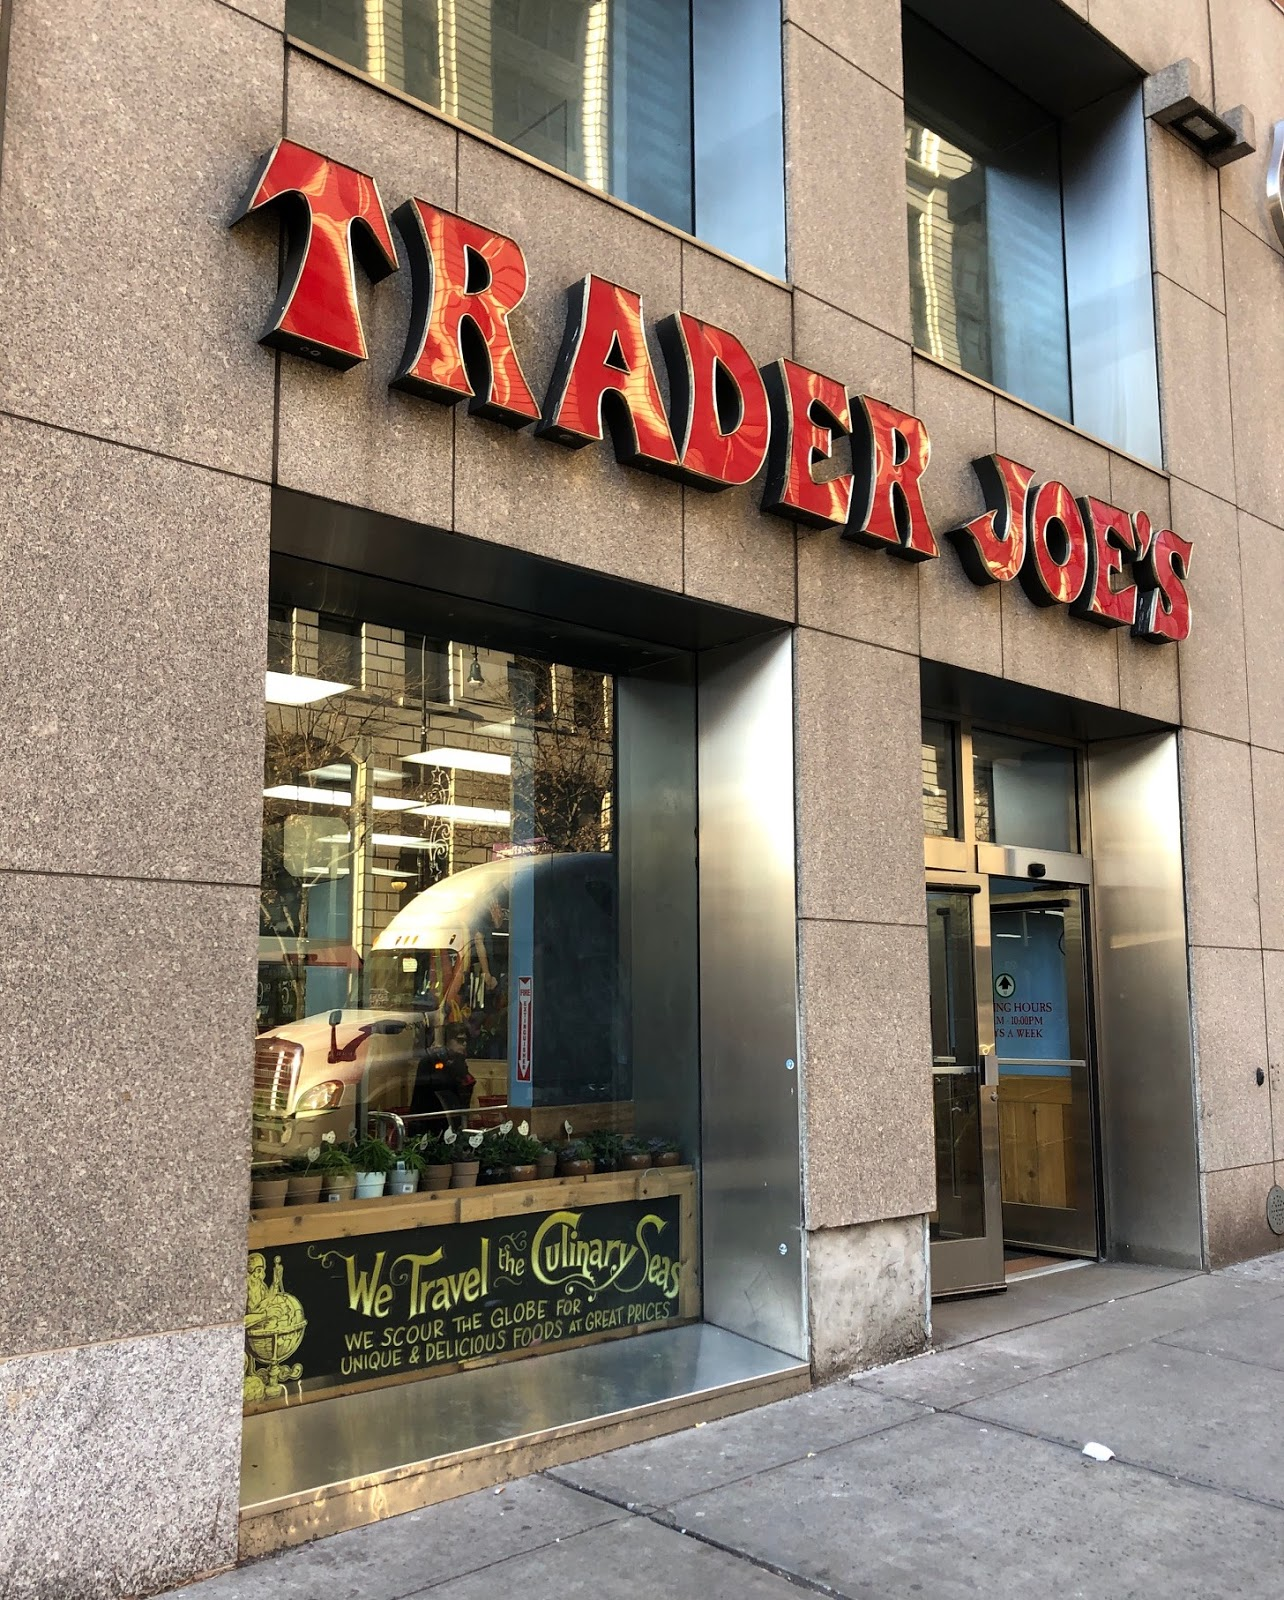 In Home Delivery Ev Grieve Trader Joe S Will End Home Delivery In Manhattan On March 1